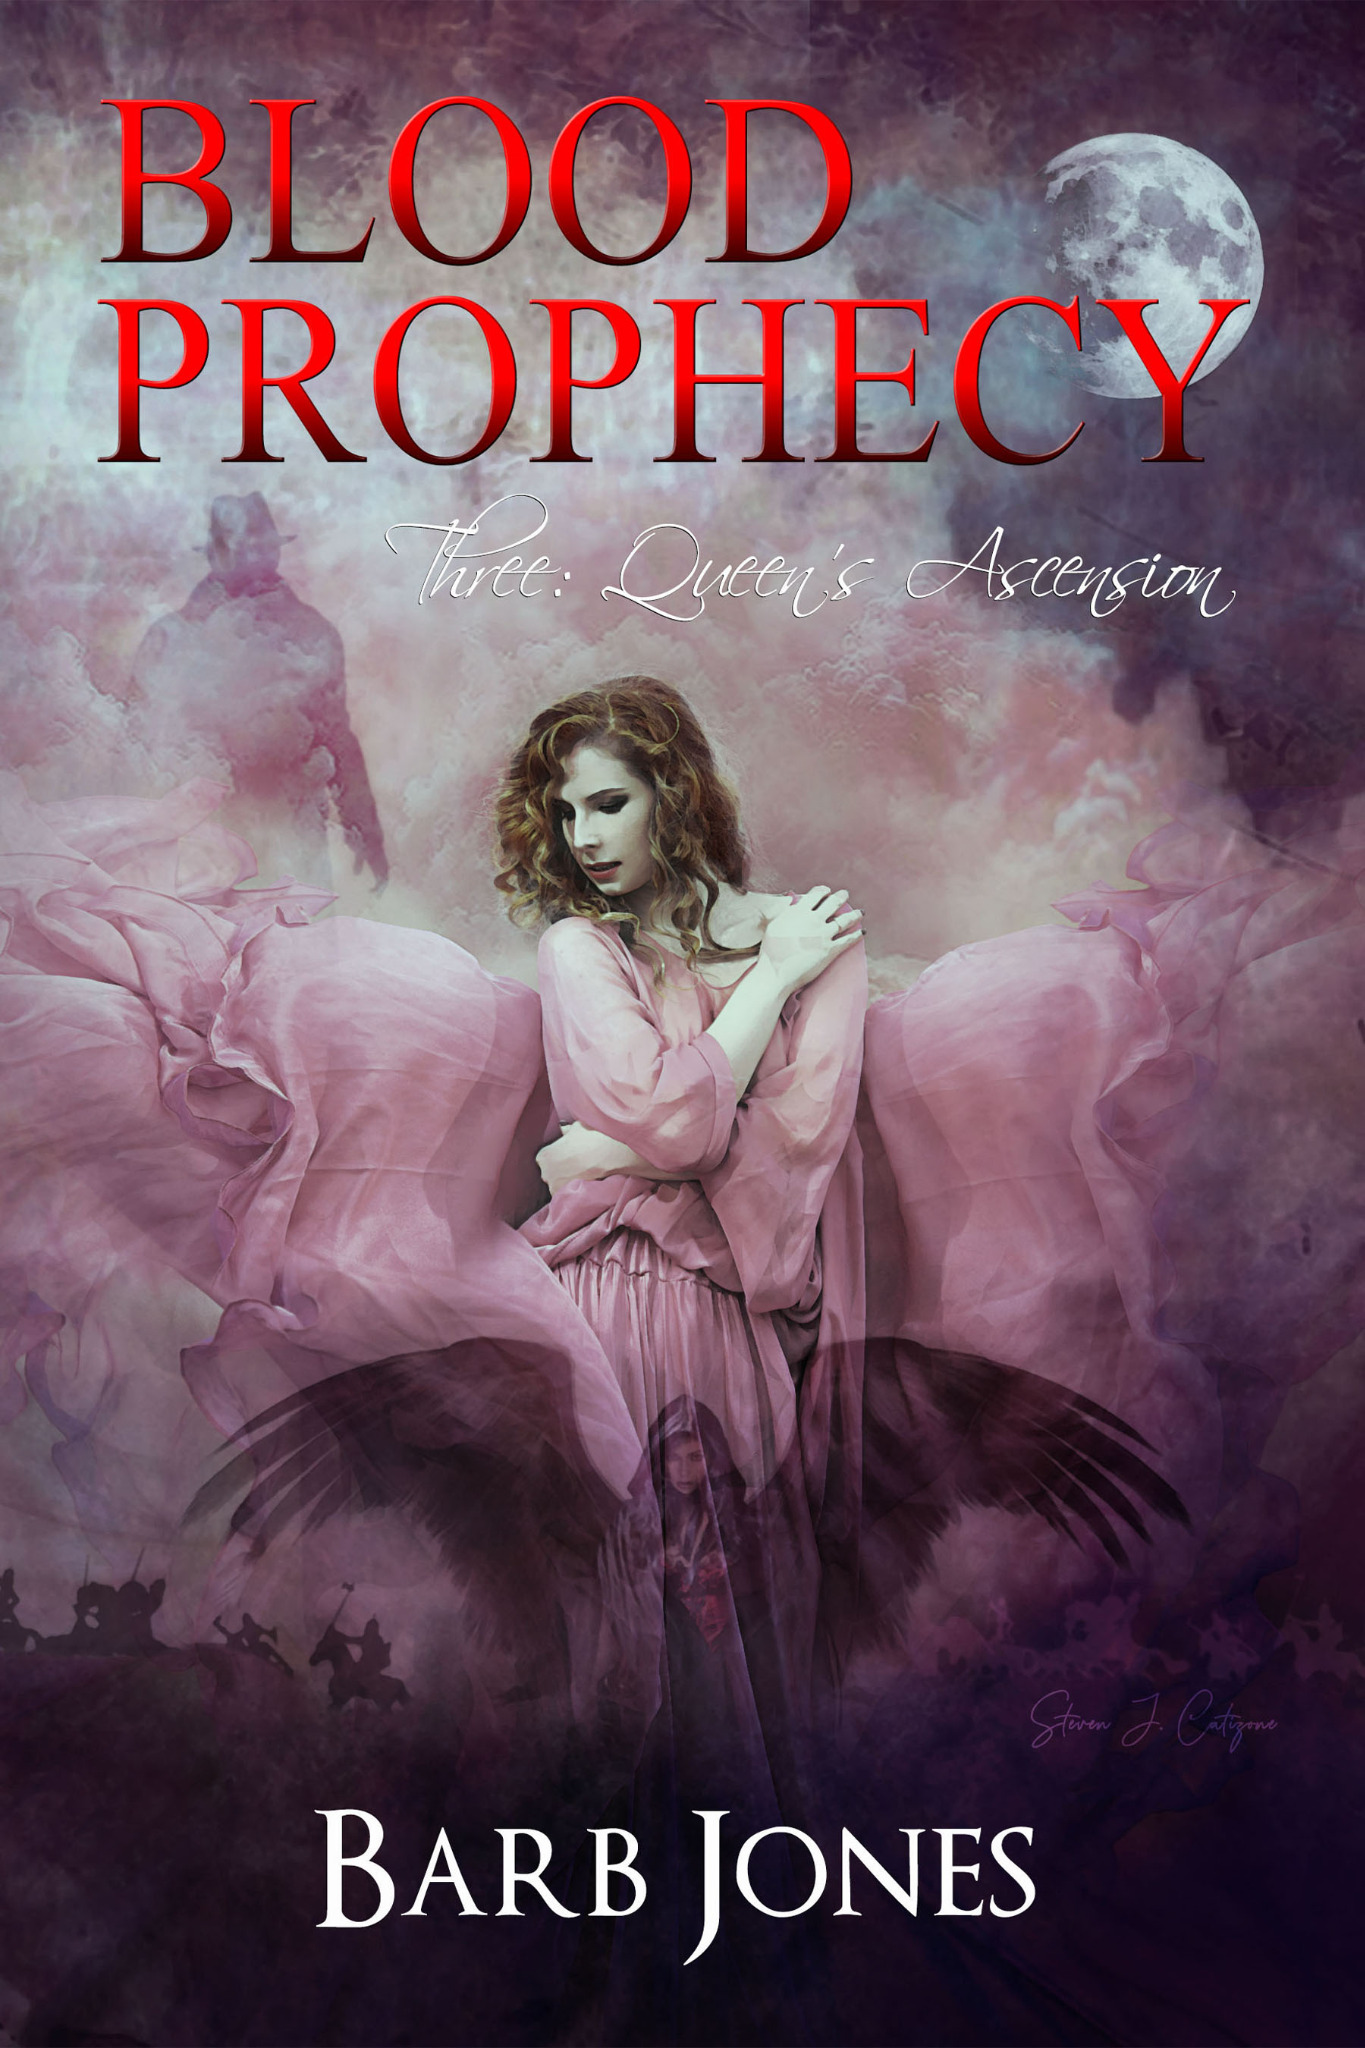 Queen's Ascension - Blood Prophecy Book 3